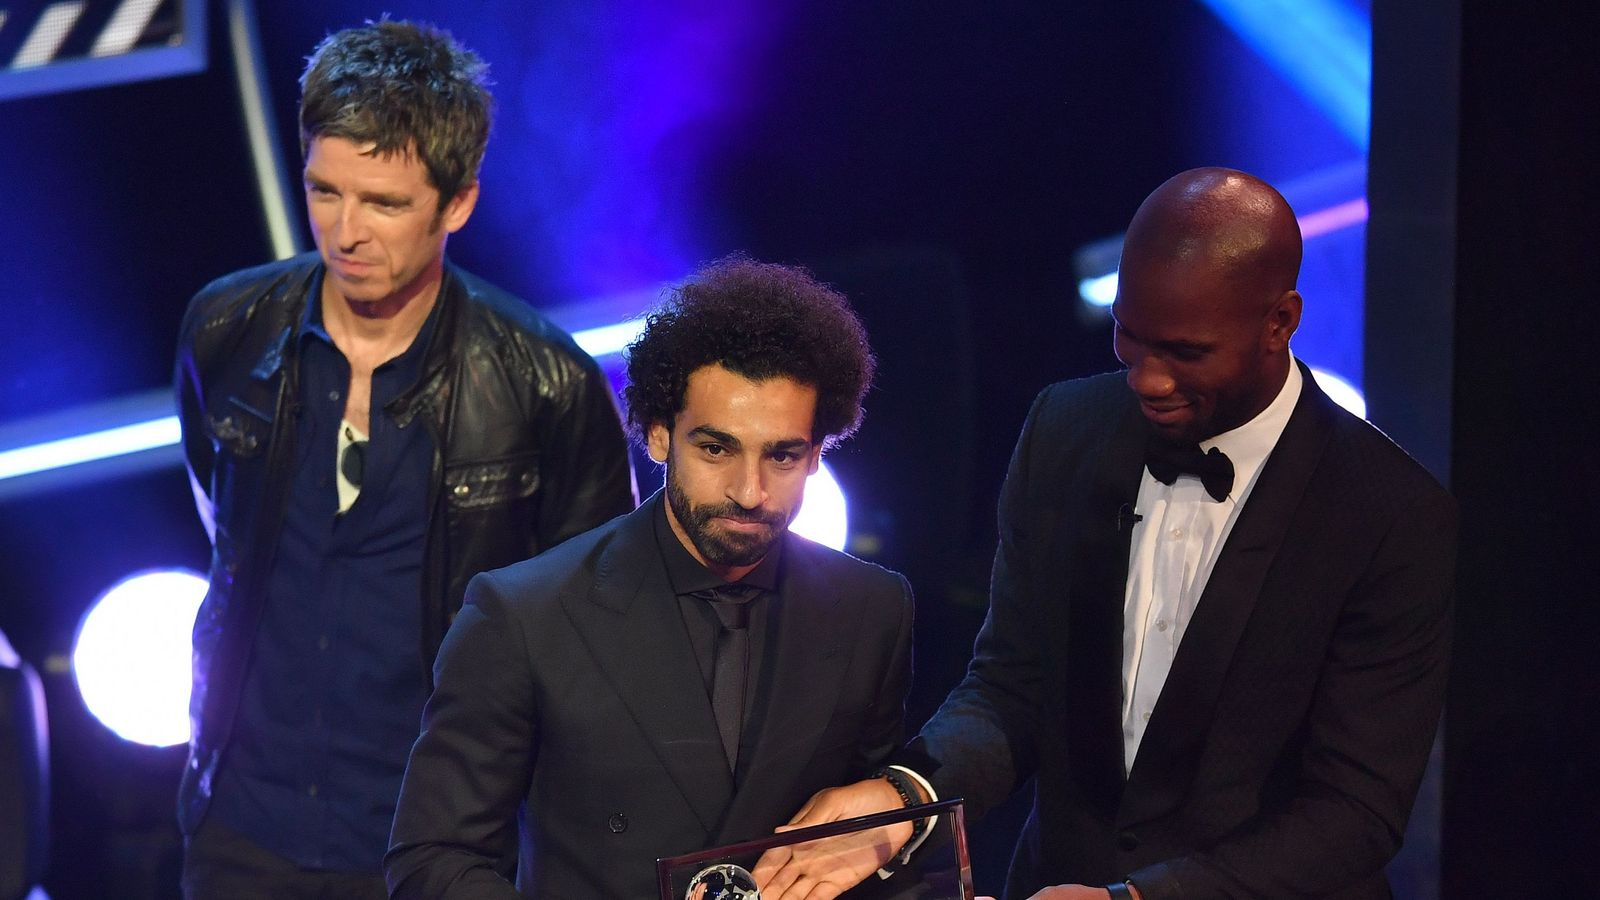 Mohamed Salah wins FIFA Puskas award for strike against Everton